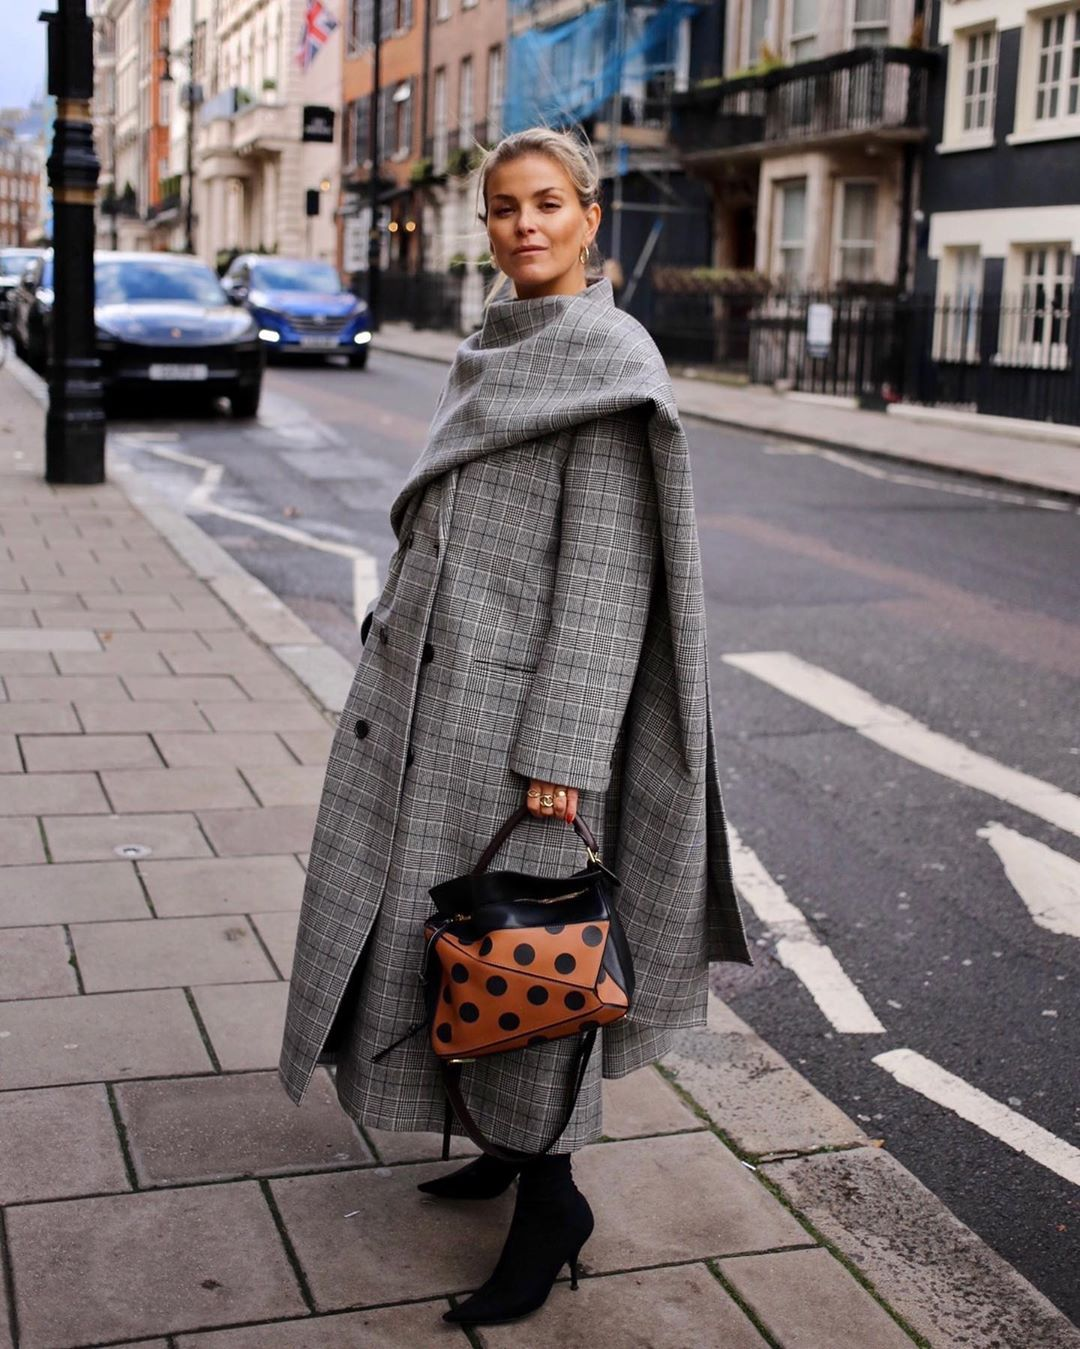 janka-polliani-balenciaga-checked-coat-with-scarf-outfit-instagram